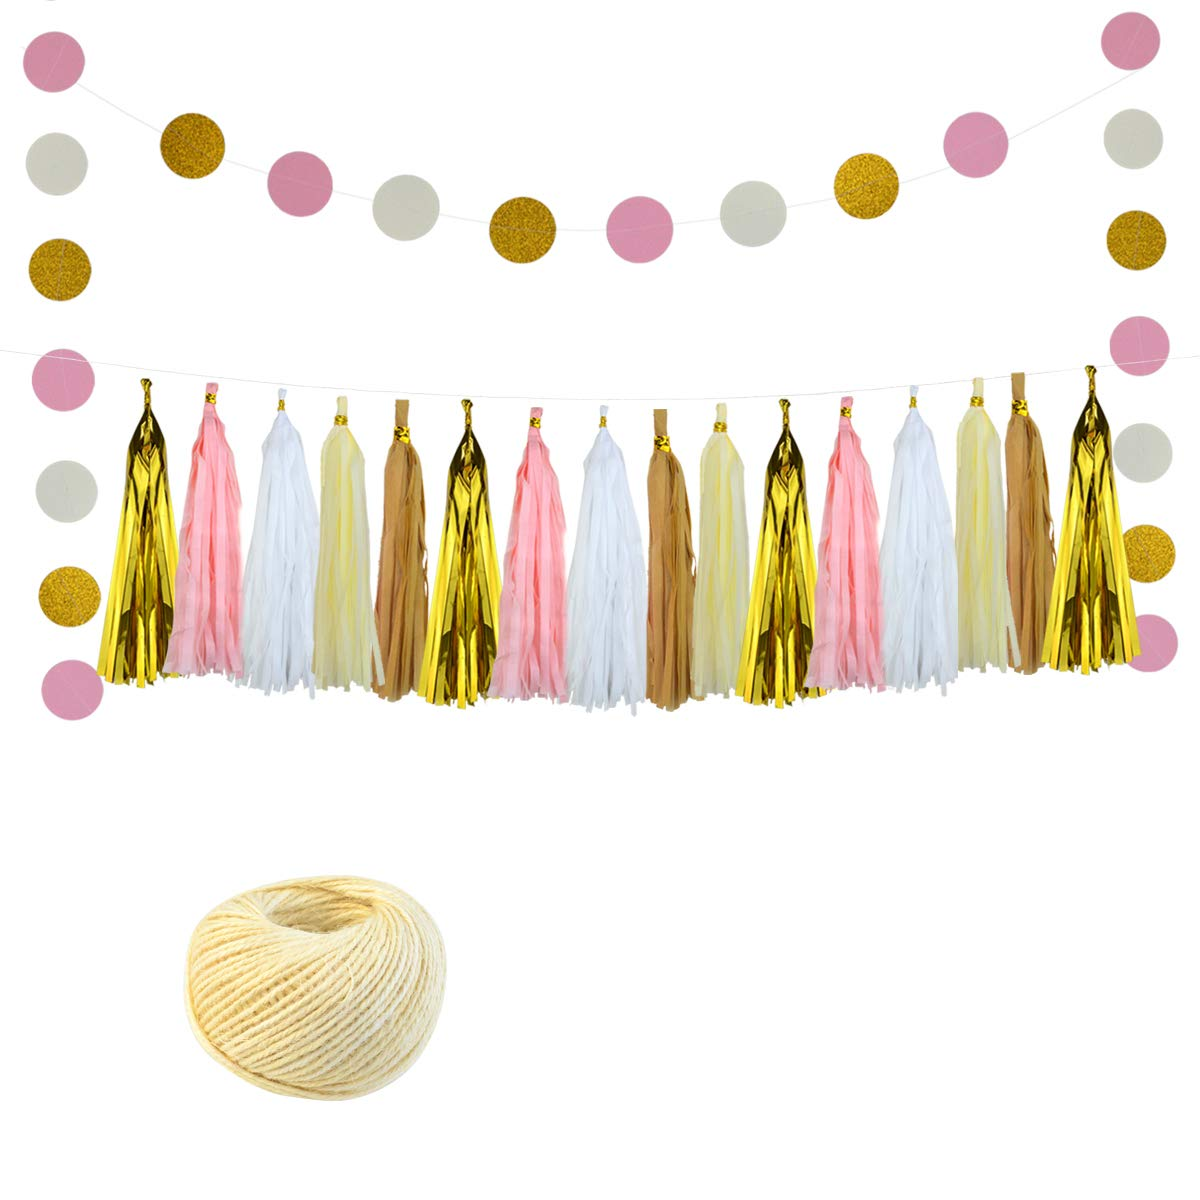 Tissue Paper DIY Assembled Paper Tassel Party Garland Pom Poms with Polka Dot Paper Garland and Cotton Rope 27pcs for Birthday, Bridal Shower, Baby Shower,Wedding,Nursery Decorations by Lee-buty